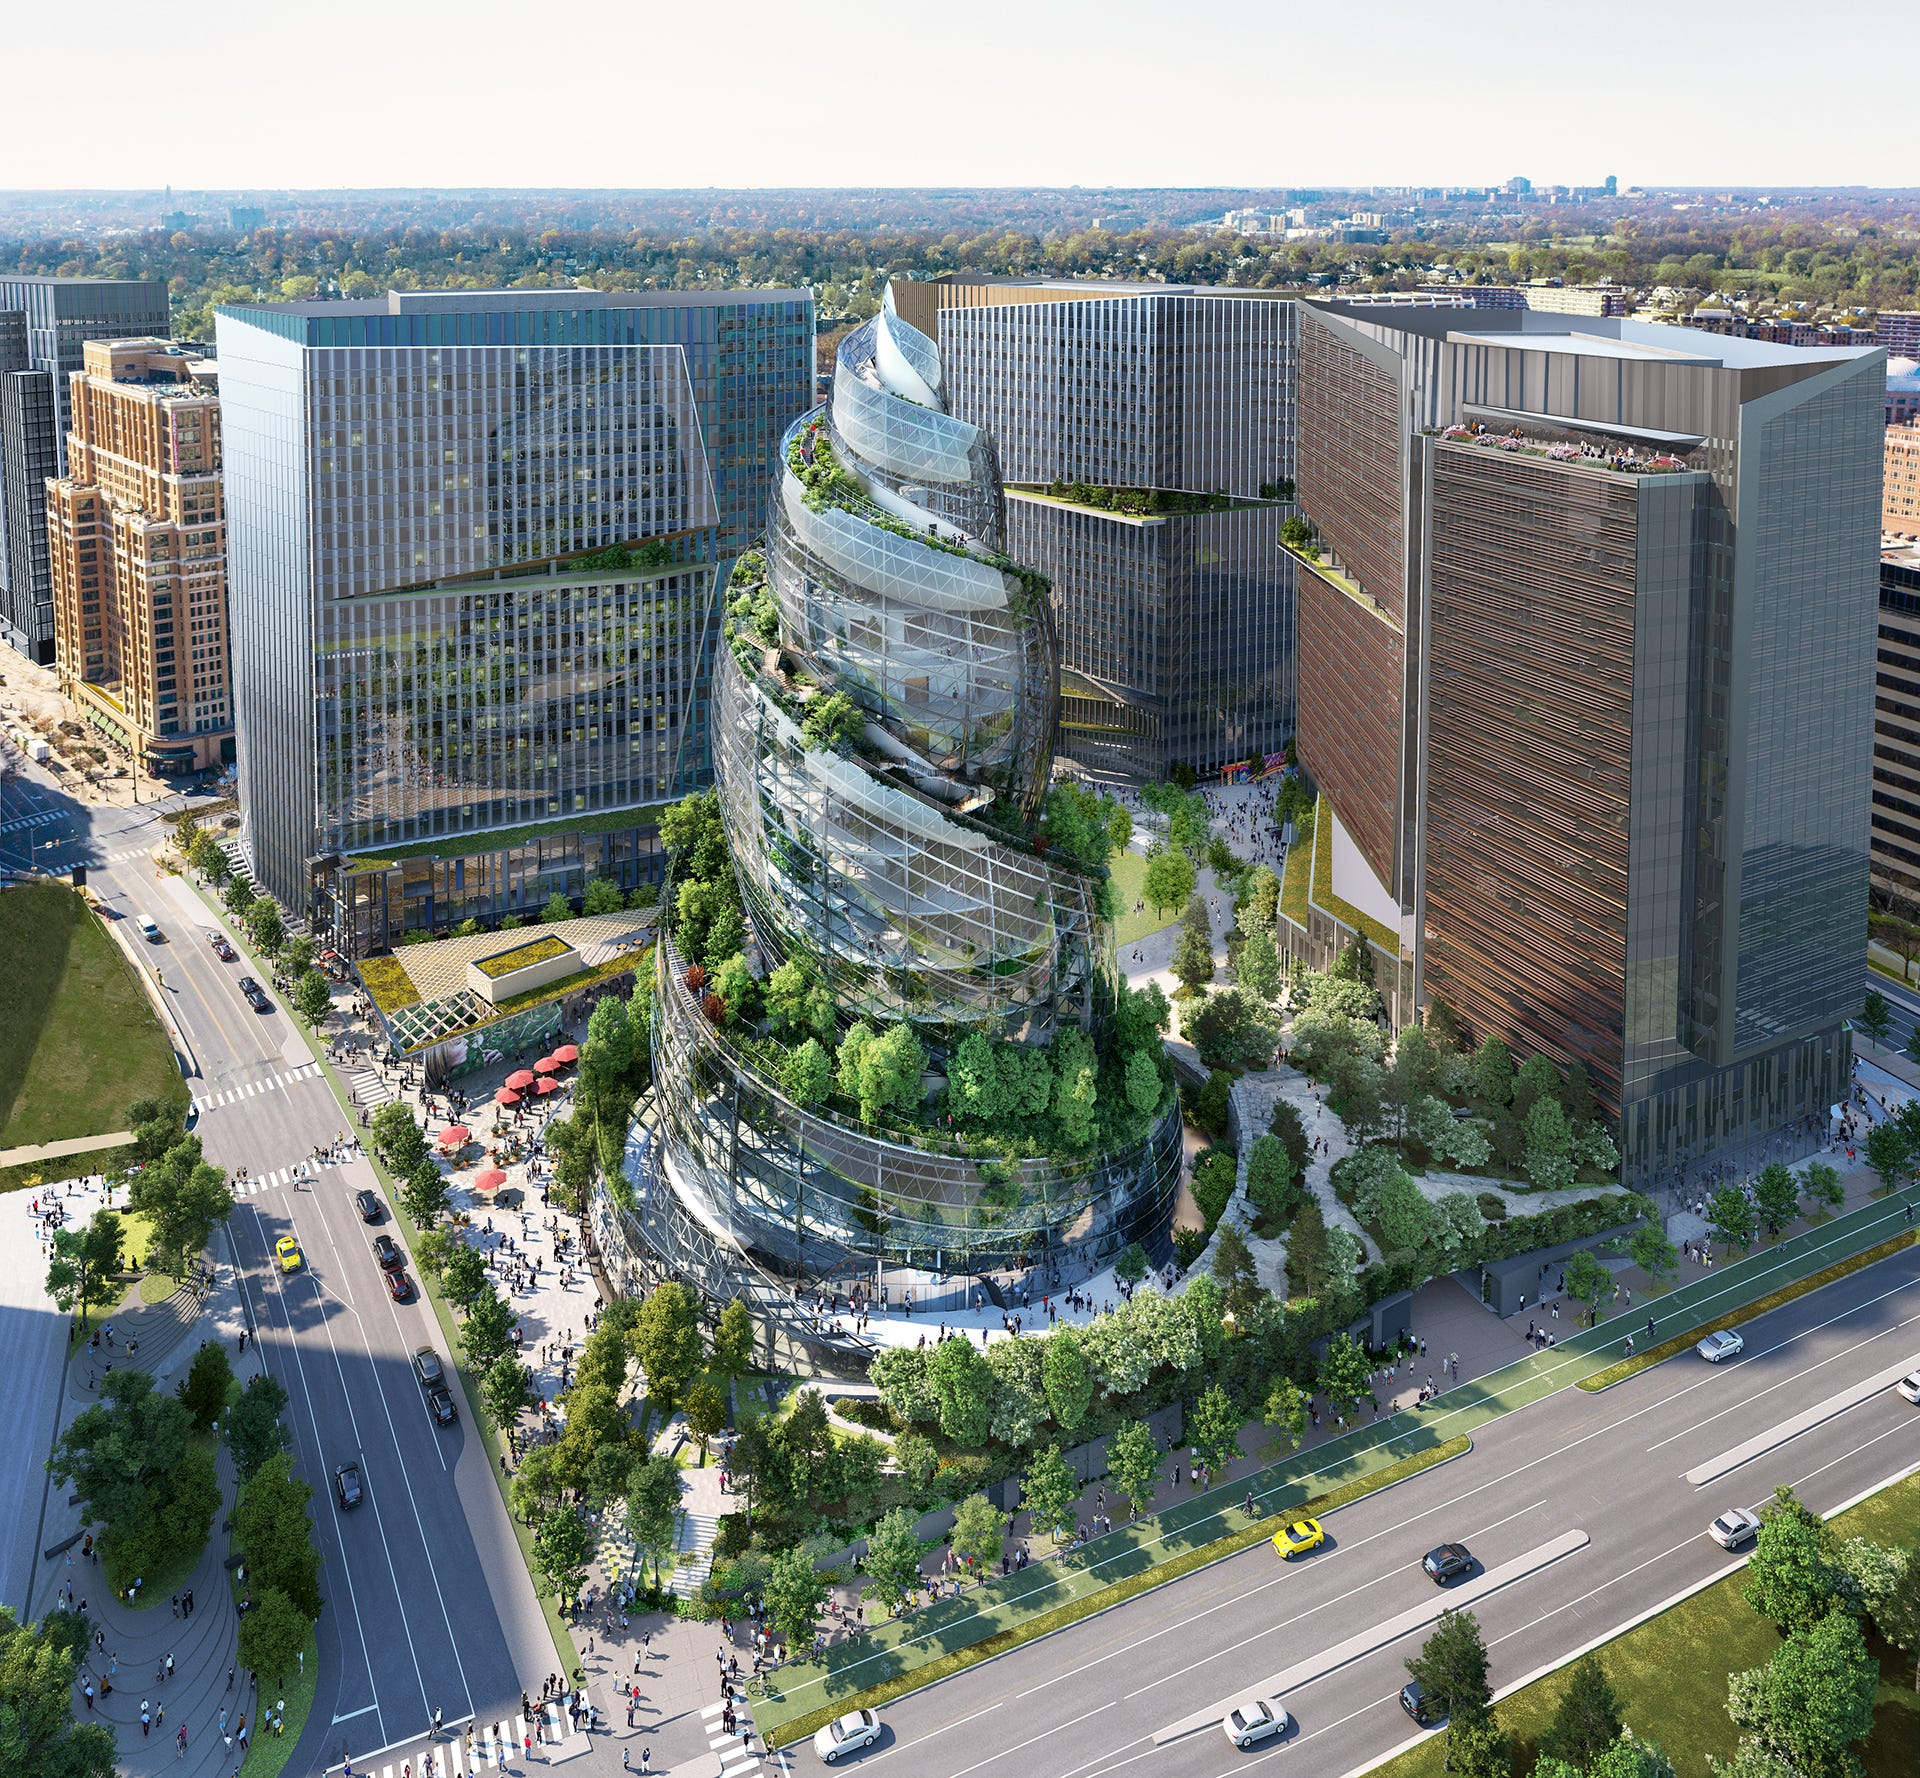 Amazon unveils its HQ2 and double helix-inspired building in Arlington, Virginia